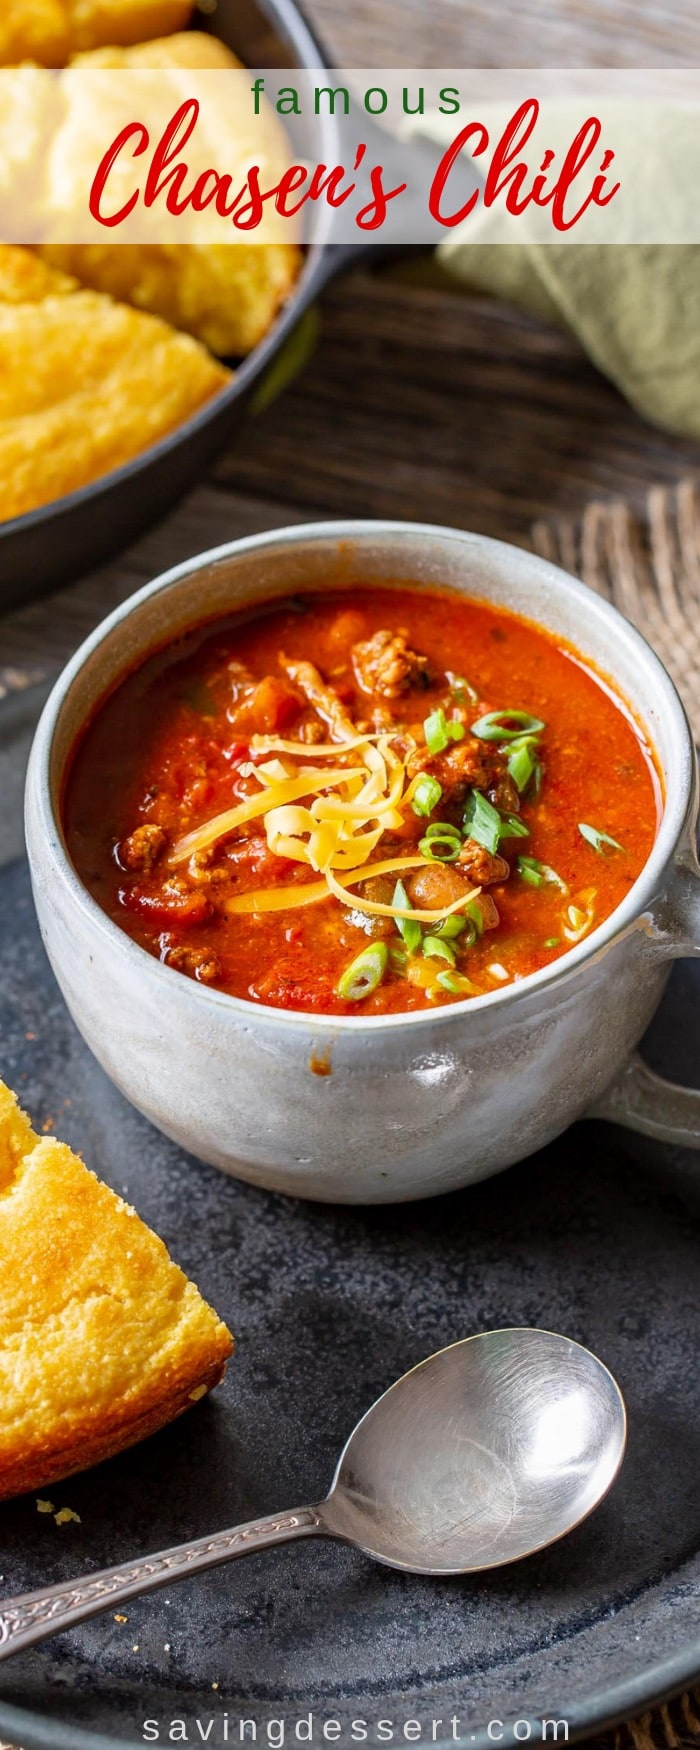 FAMOUS Chasen's Chili - adapted from the famous Chasen's Hollywood restaurant recipe which was a favorite with actors including Elizabeth Taylor and Richard Burton. A delicious meaty chili that freezes well too! #savingroomfordessert #chili #chasenschili #meatychili #heartychili #beef #famouschili